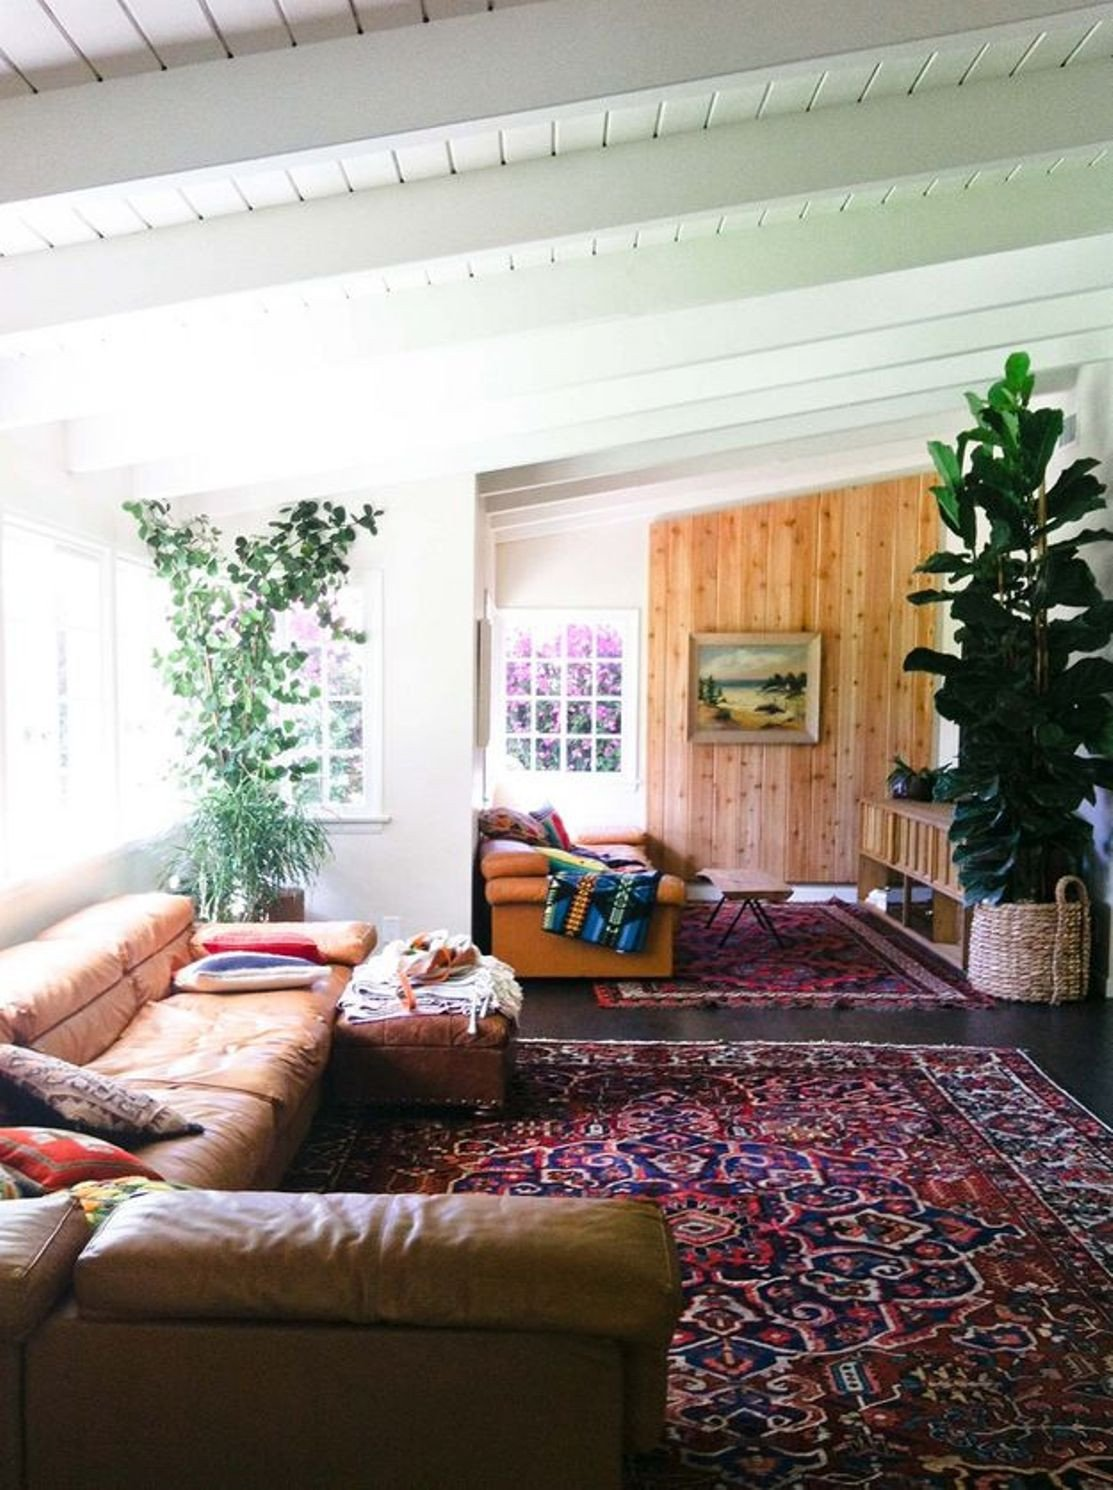 Small Bohemian Living Room Ideas Bohemian Living Room Design with Bohemian Carpet and